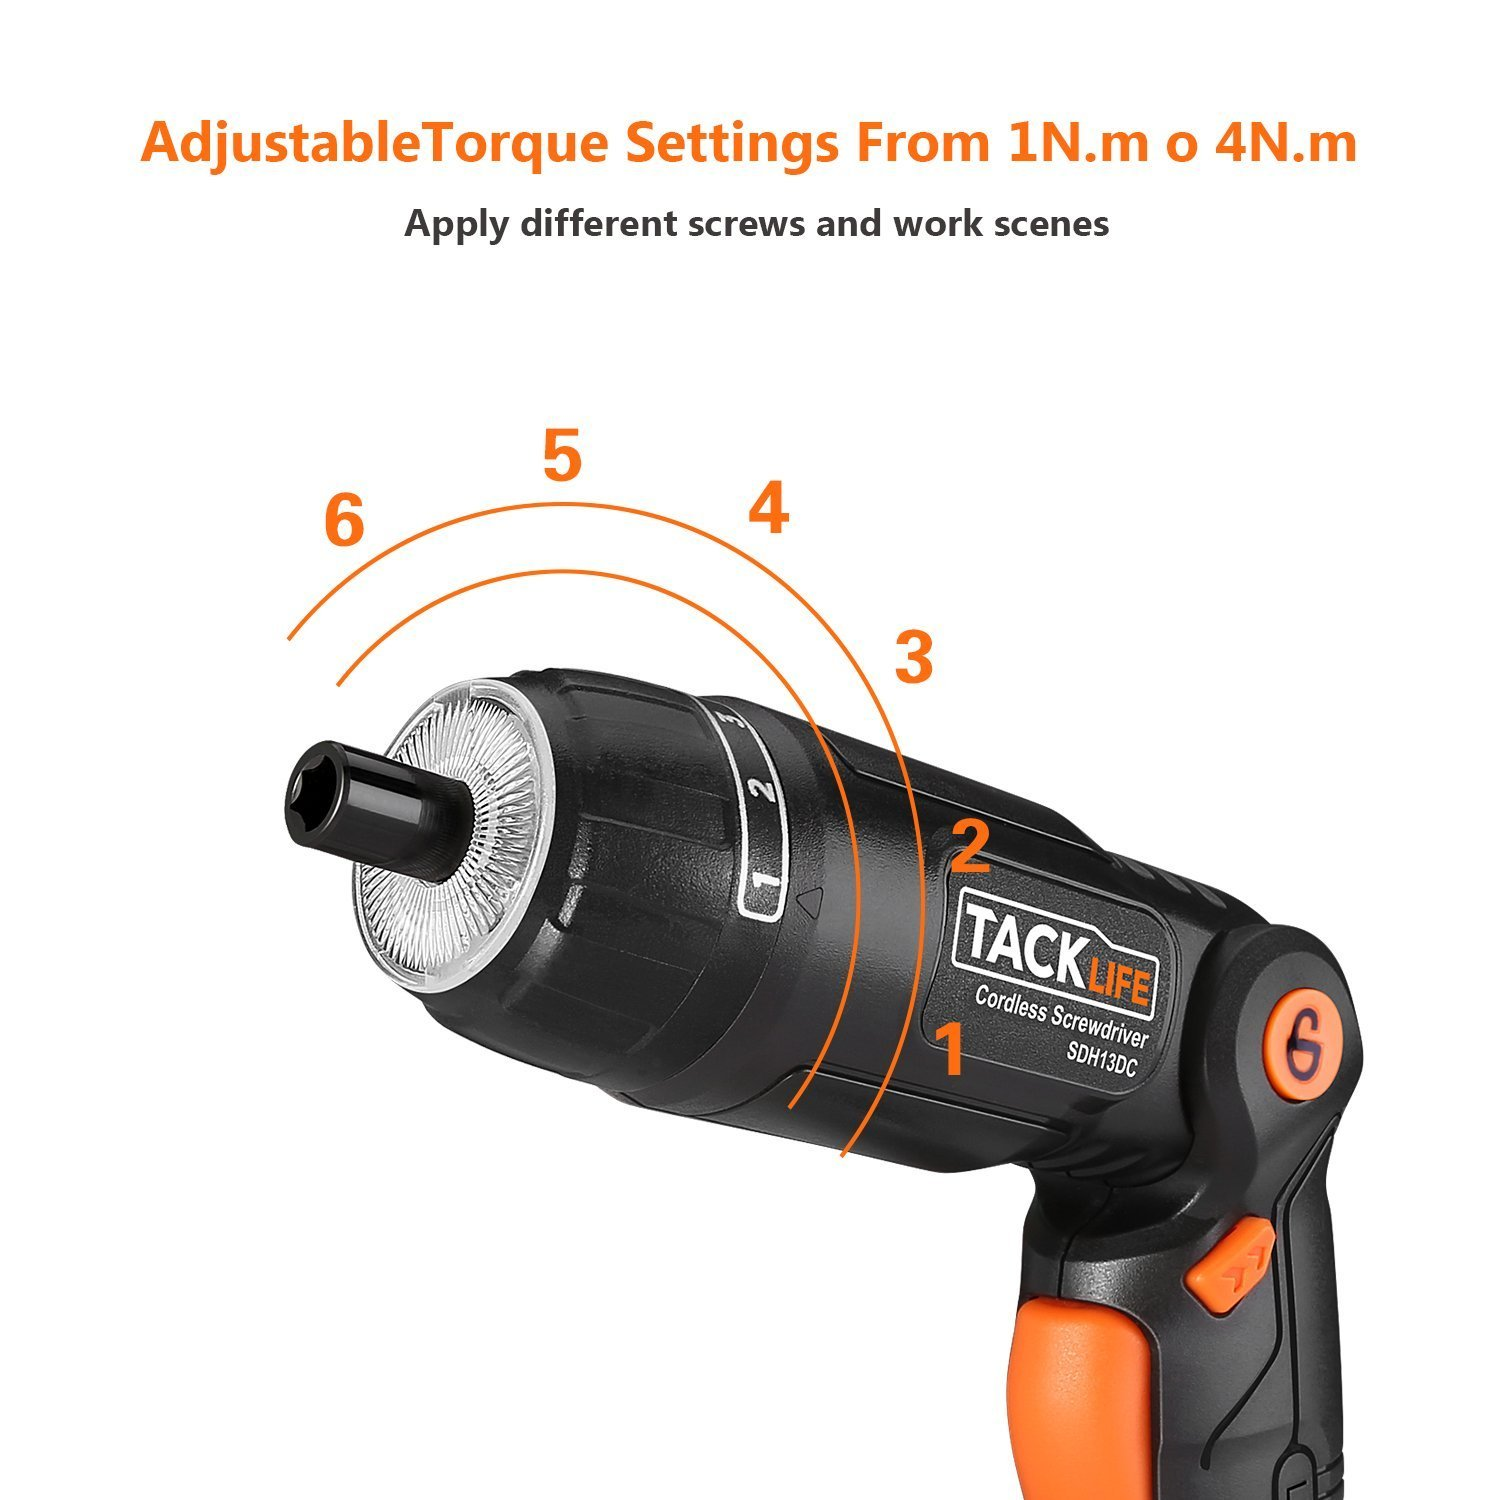 Tacklife SDH13DC Cordless Screwdriver 3.6-Volt 2000mAh MAX Torque 4N.m - 3-Position Rechargeable - 31 Screwdriver Bits in Case, 4 LED Light, Flashlight, USB Charging for Around House Small Jobs by TACKLIFE (Image #3)